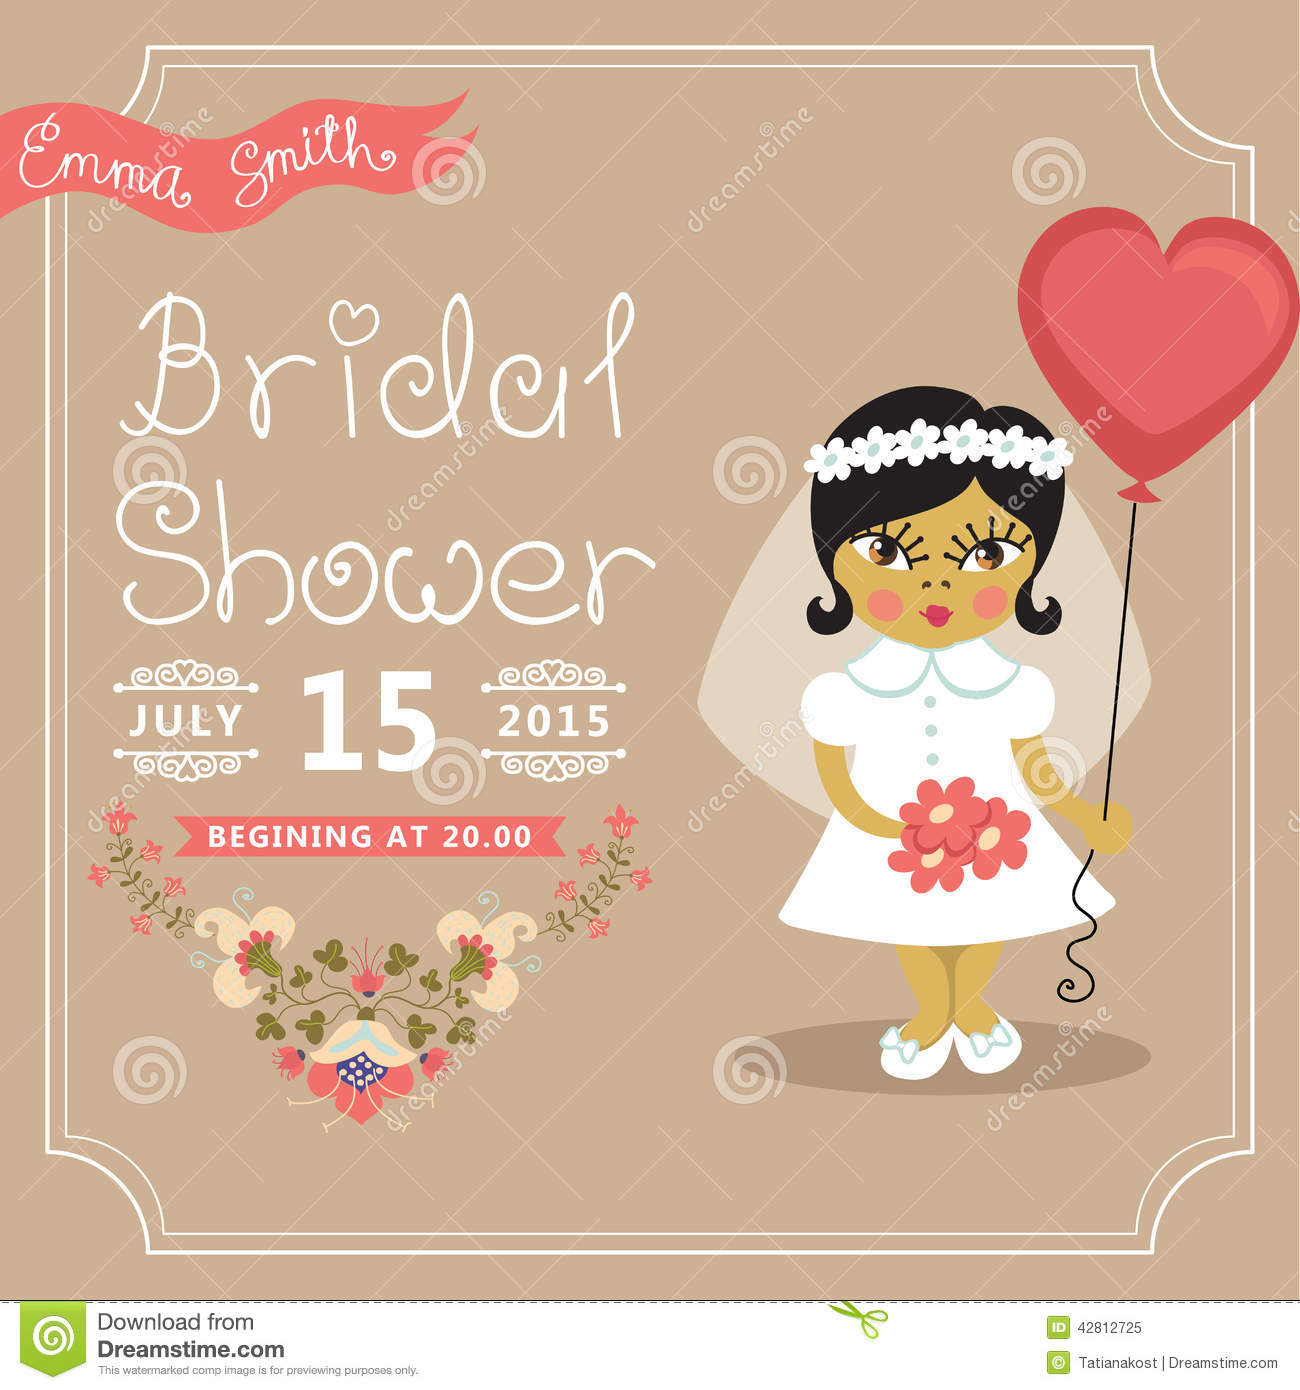 ... in a balloon.Retro wedding invitation.Fashion vector Illustration